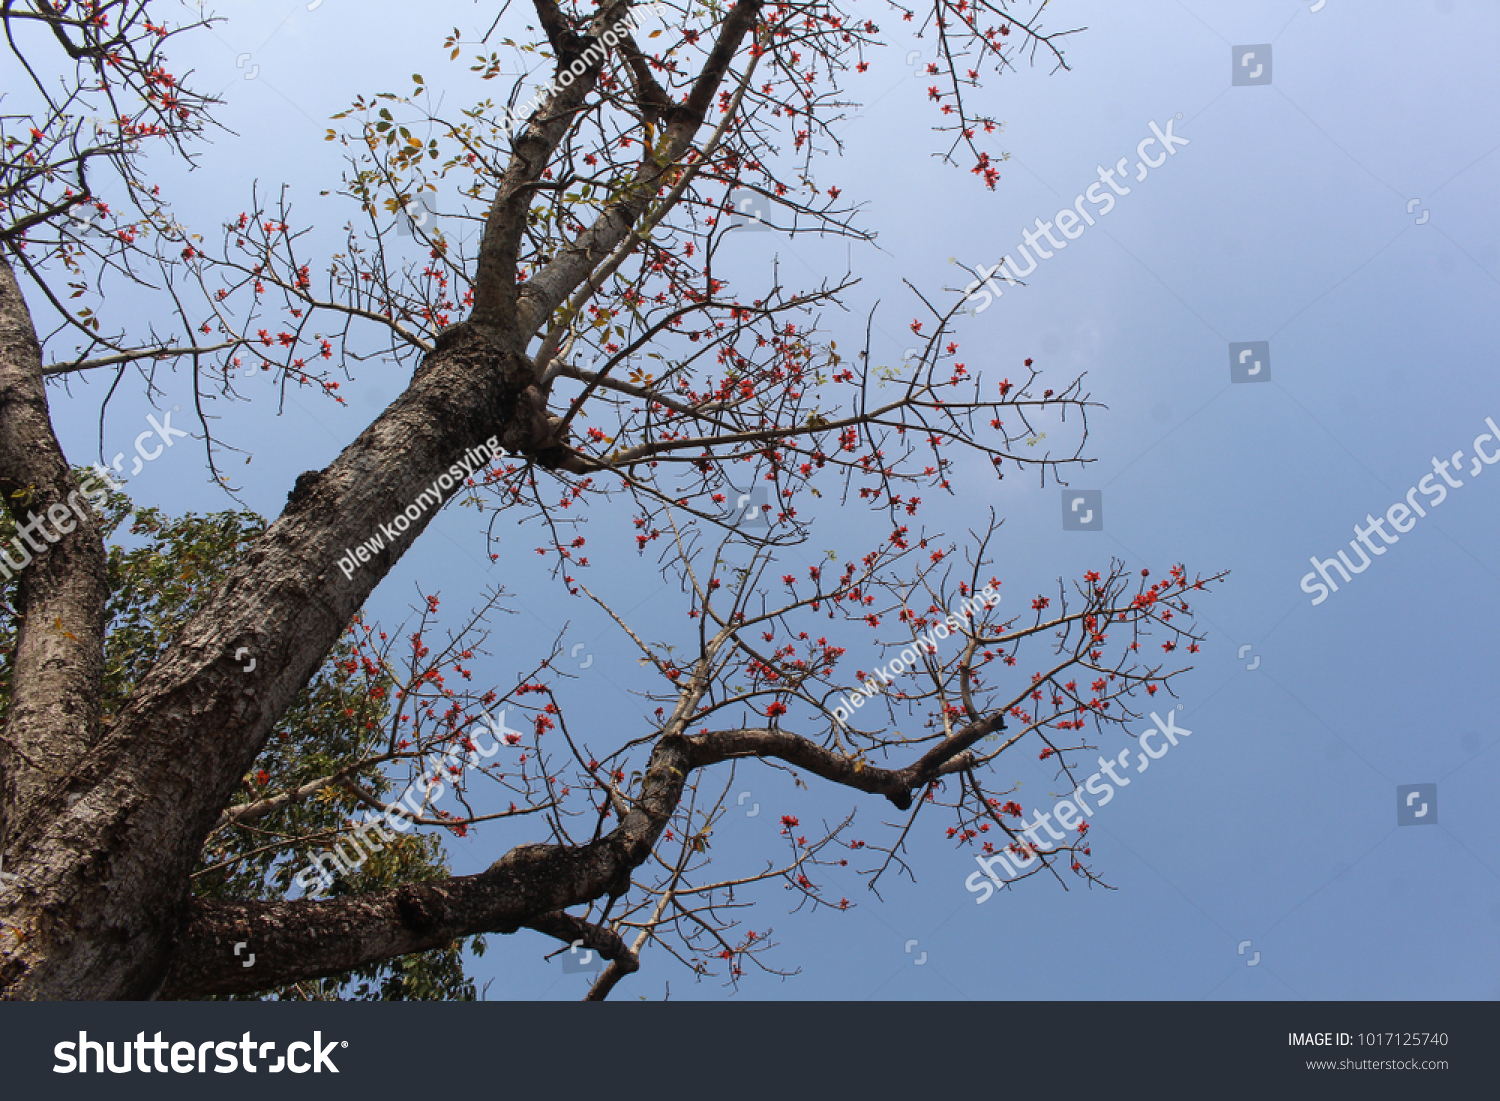 Top Red Cotton Tree Flowers On Stock Photo Edit Now 1017125740